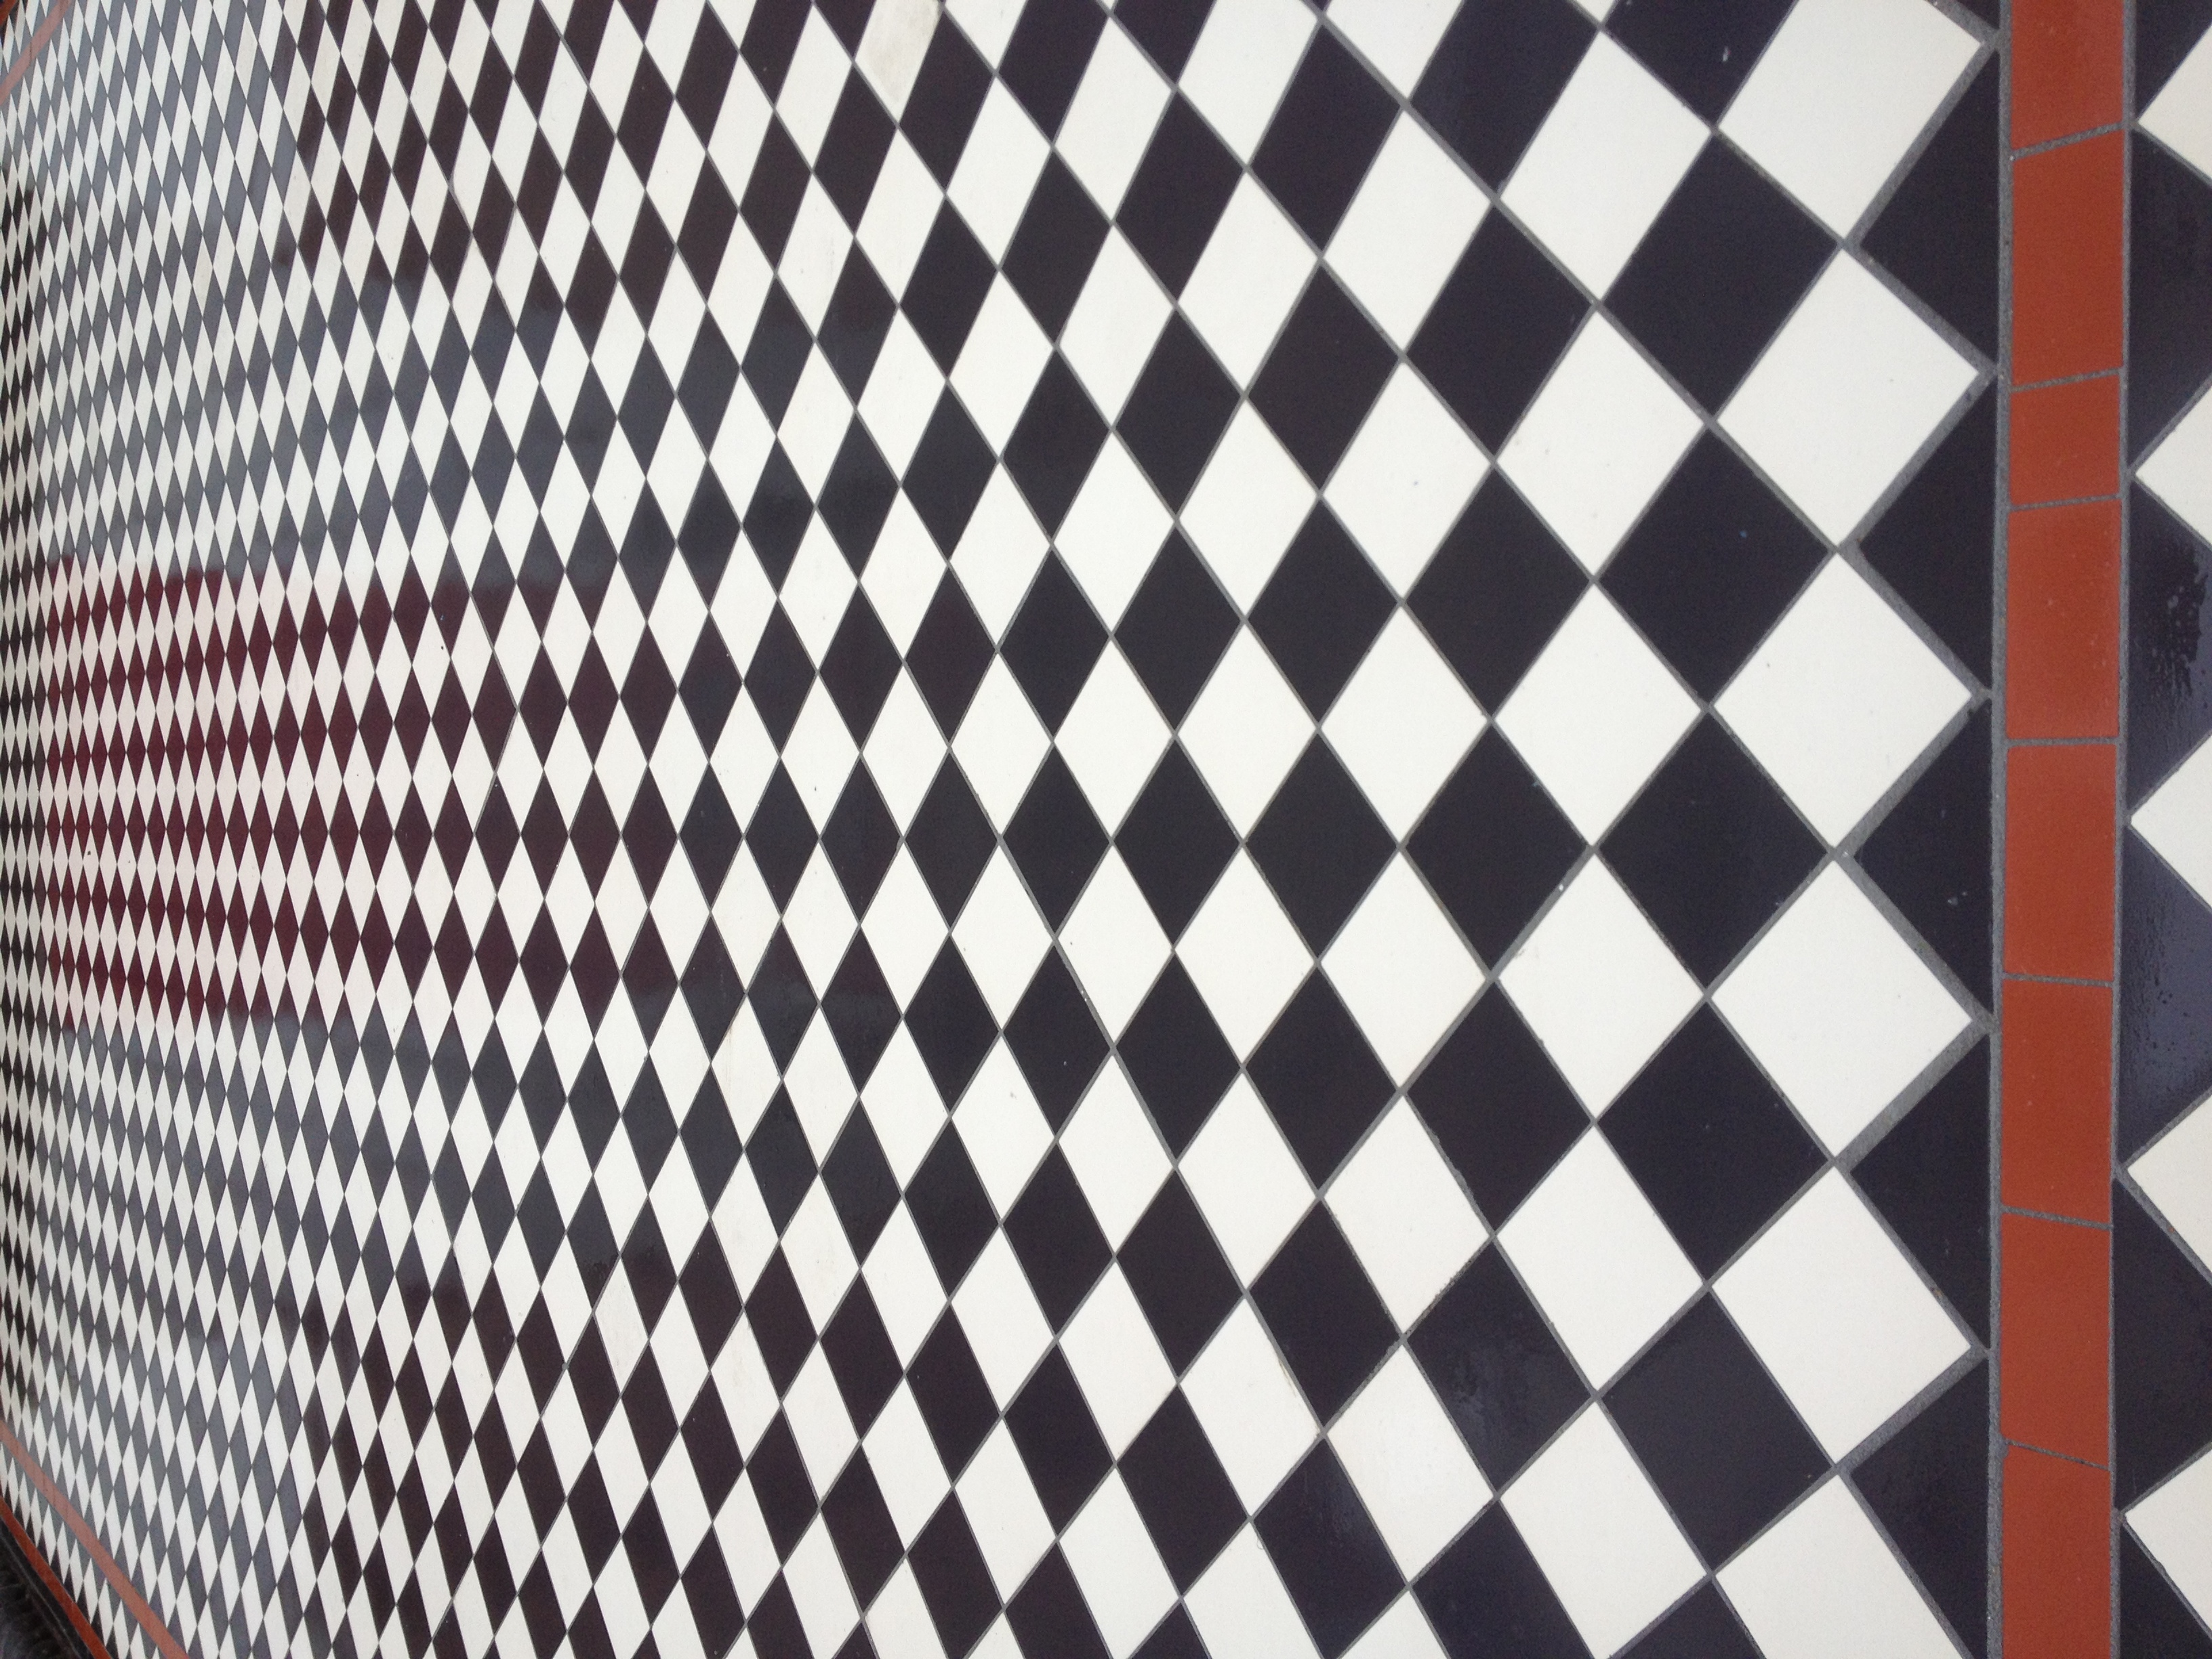 004 Chequer with White Diamond Border & Red Lines